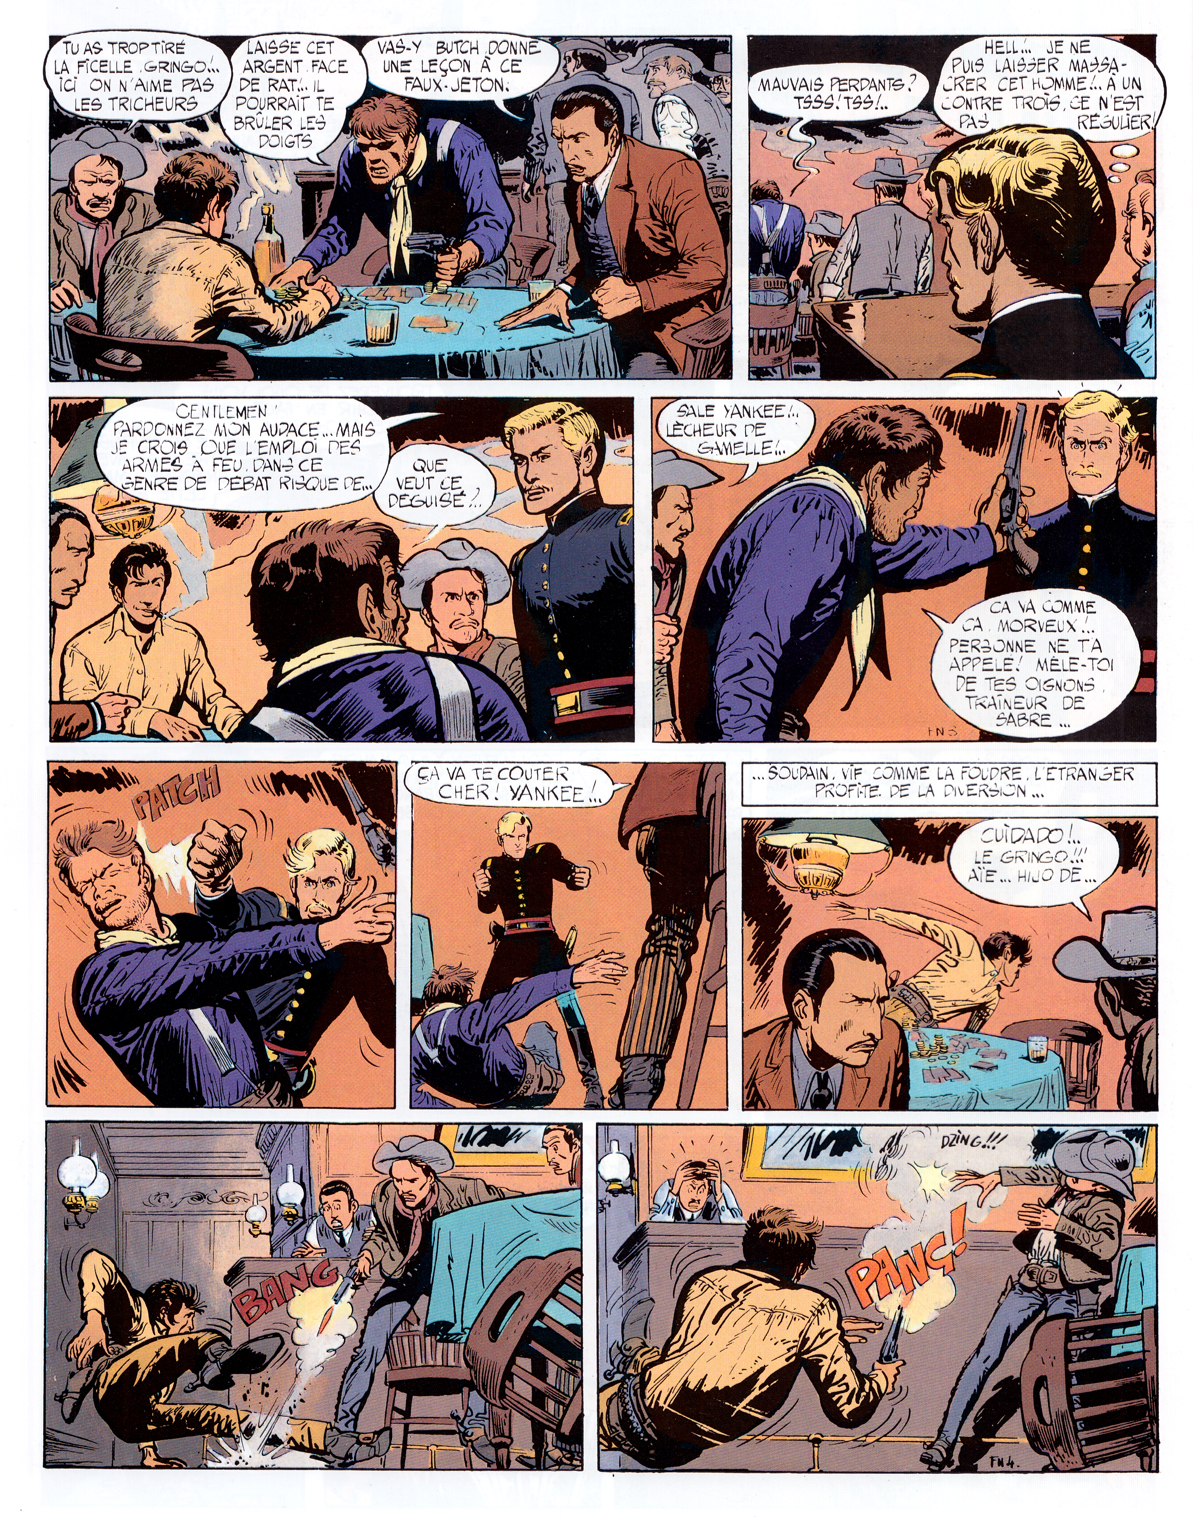 Giraud & Charlier, Fort Navajo 1965; page four  of the first Blueberry story.